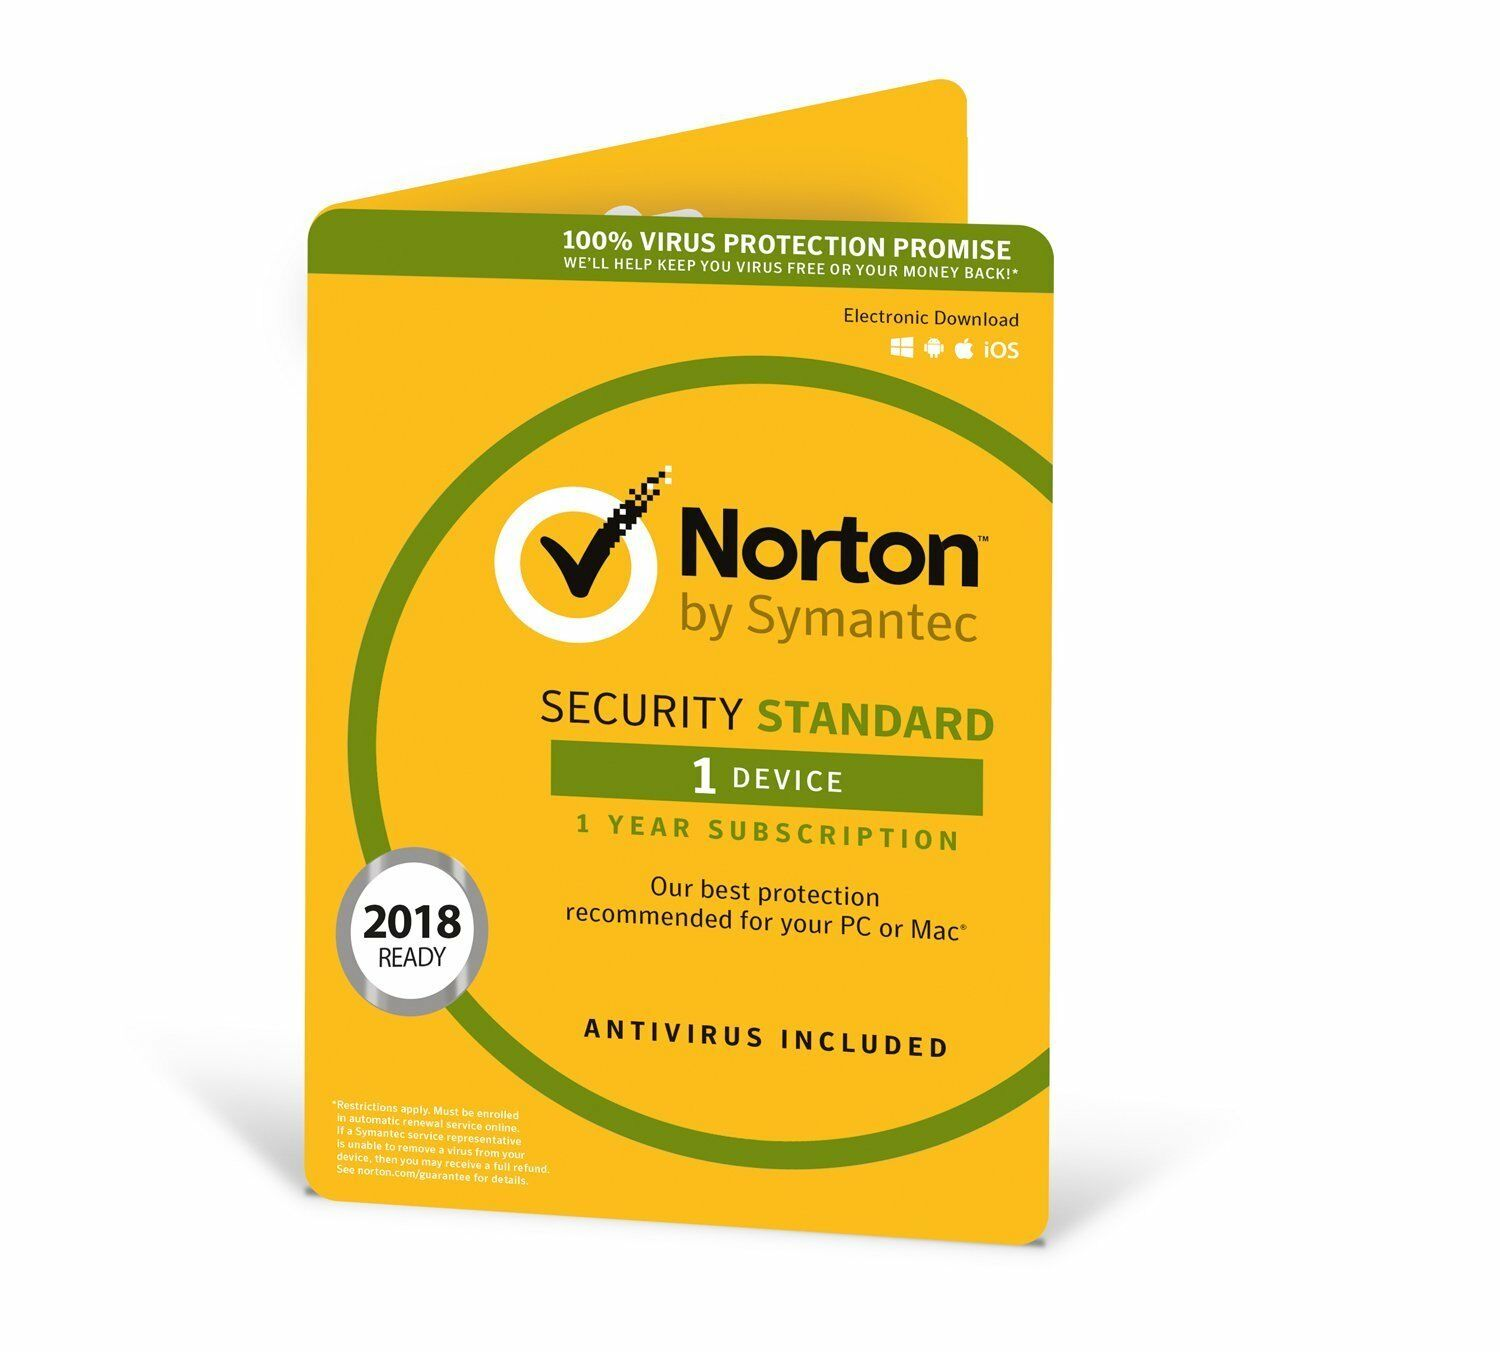 Norton — a worldwide leading brand in consumer security, and LifeLock — a pioneer in identity theft protection, are now part of one company with one mission: providing identity and device protection for your connected life.